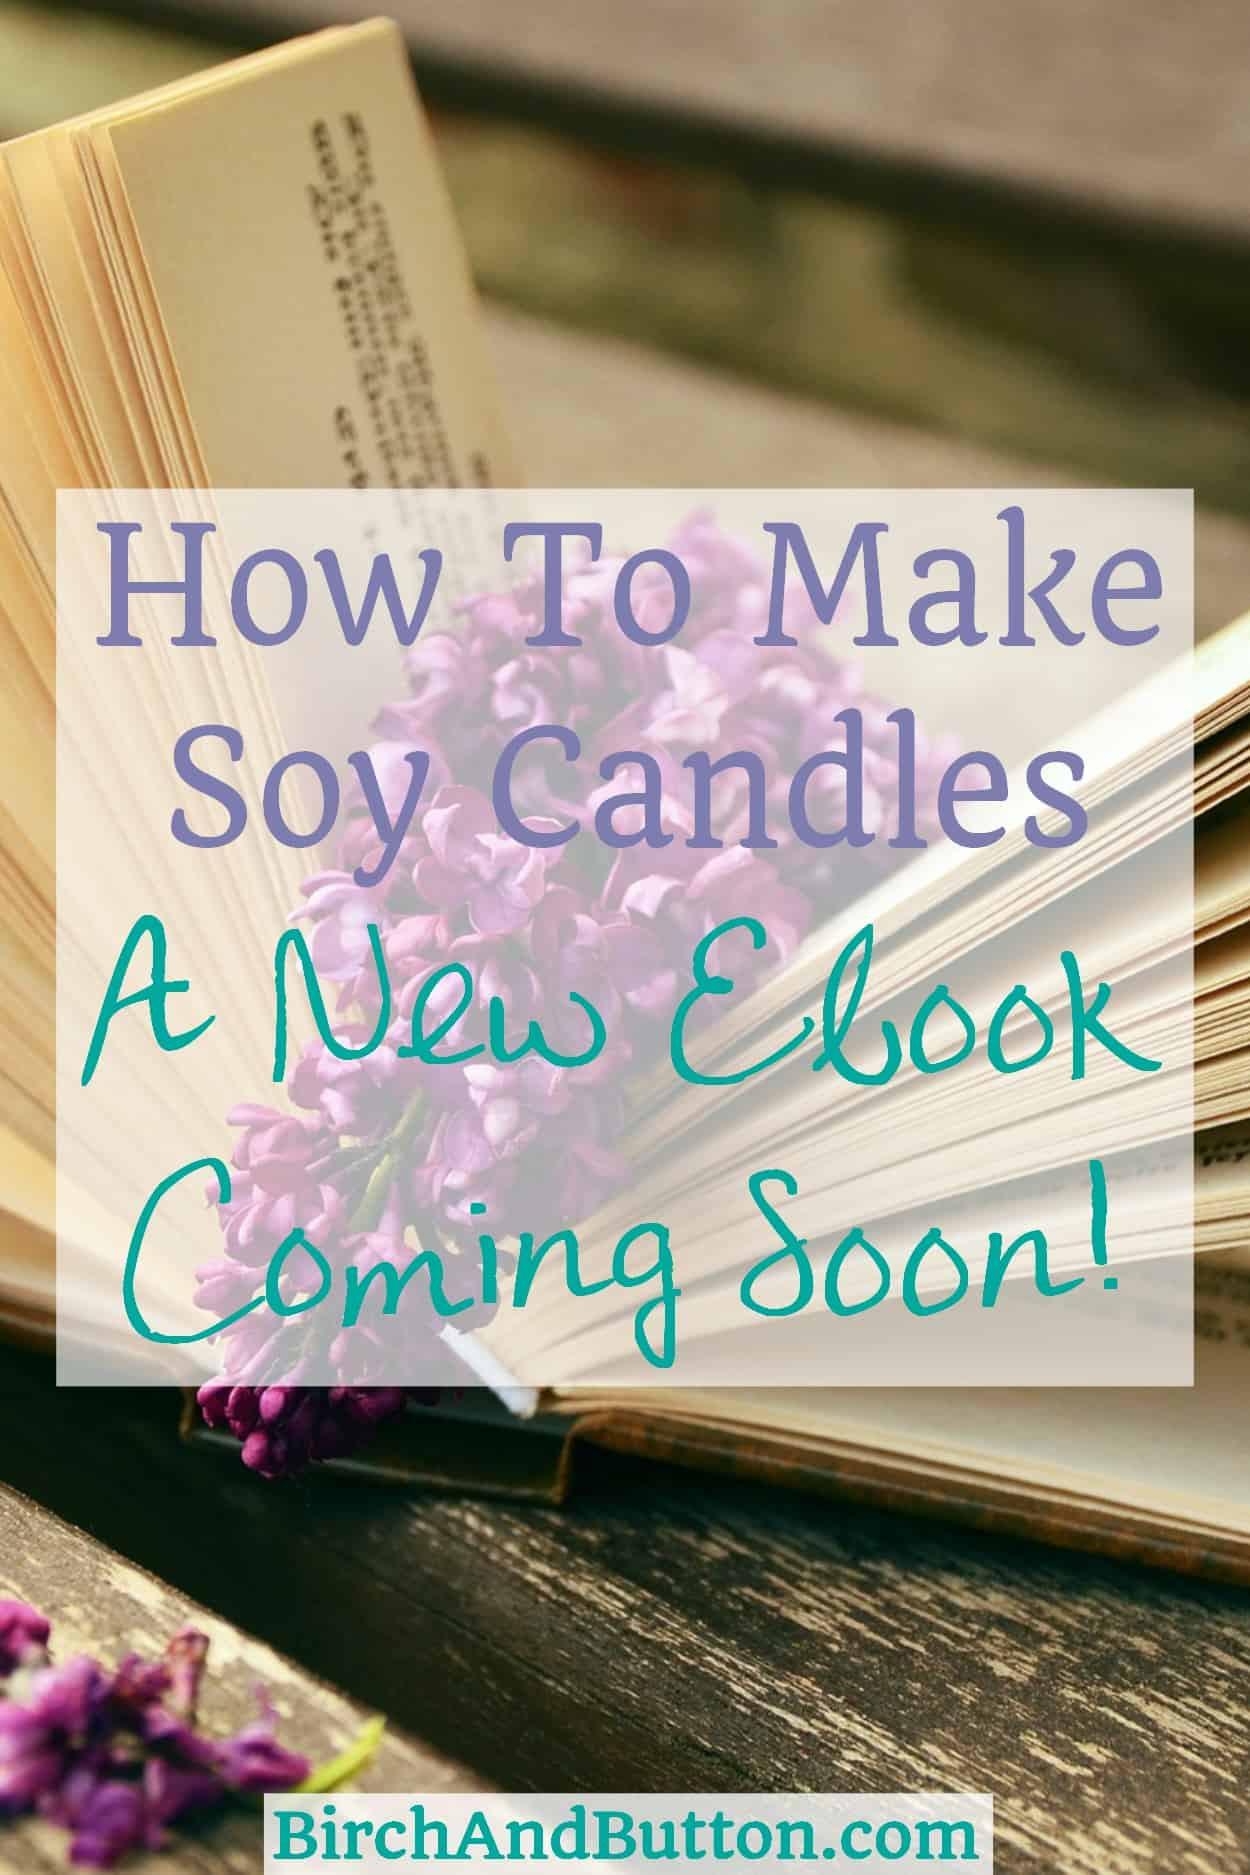 How To Make Soy Candles – New Ebook Coming Soon | BirchAndButton.com